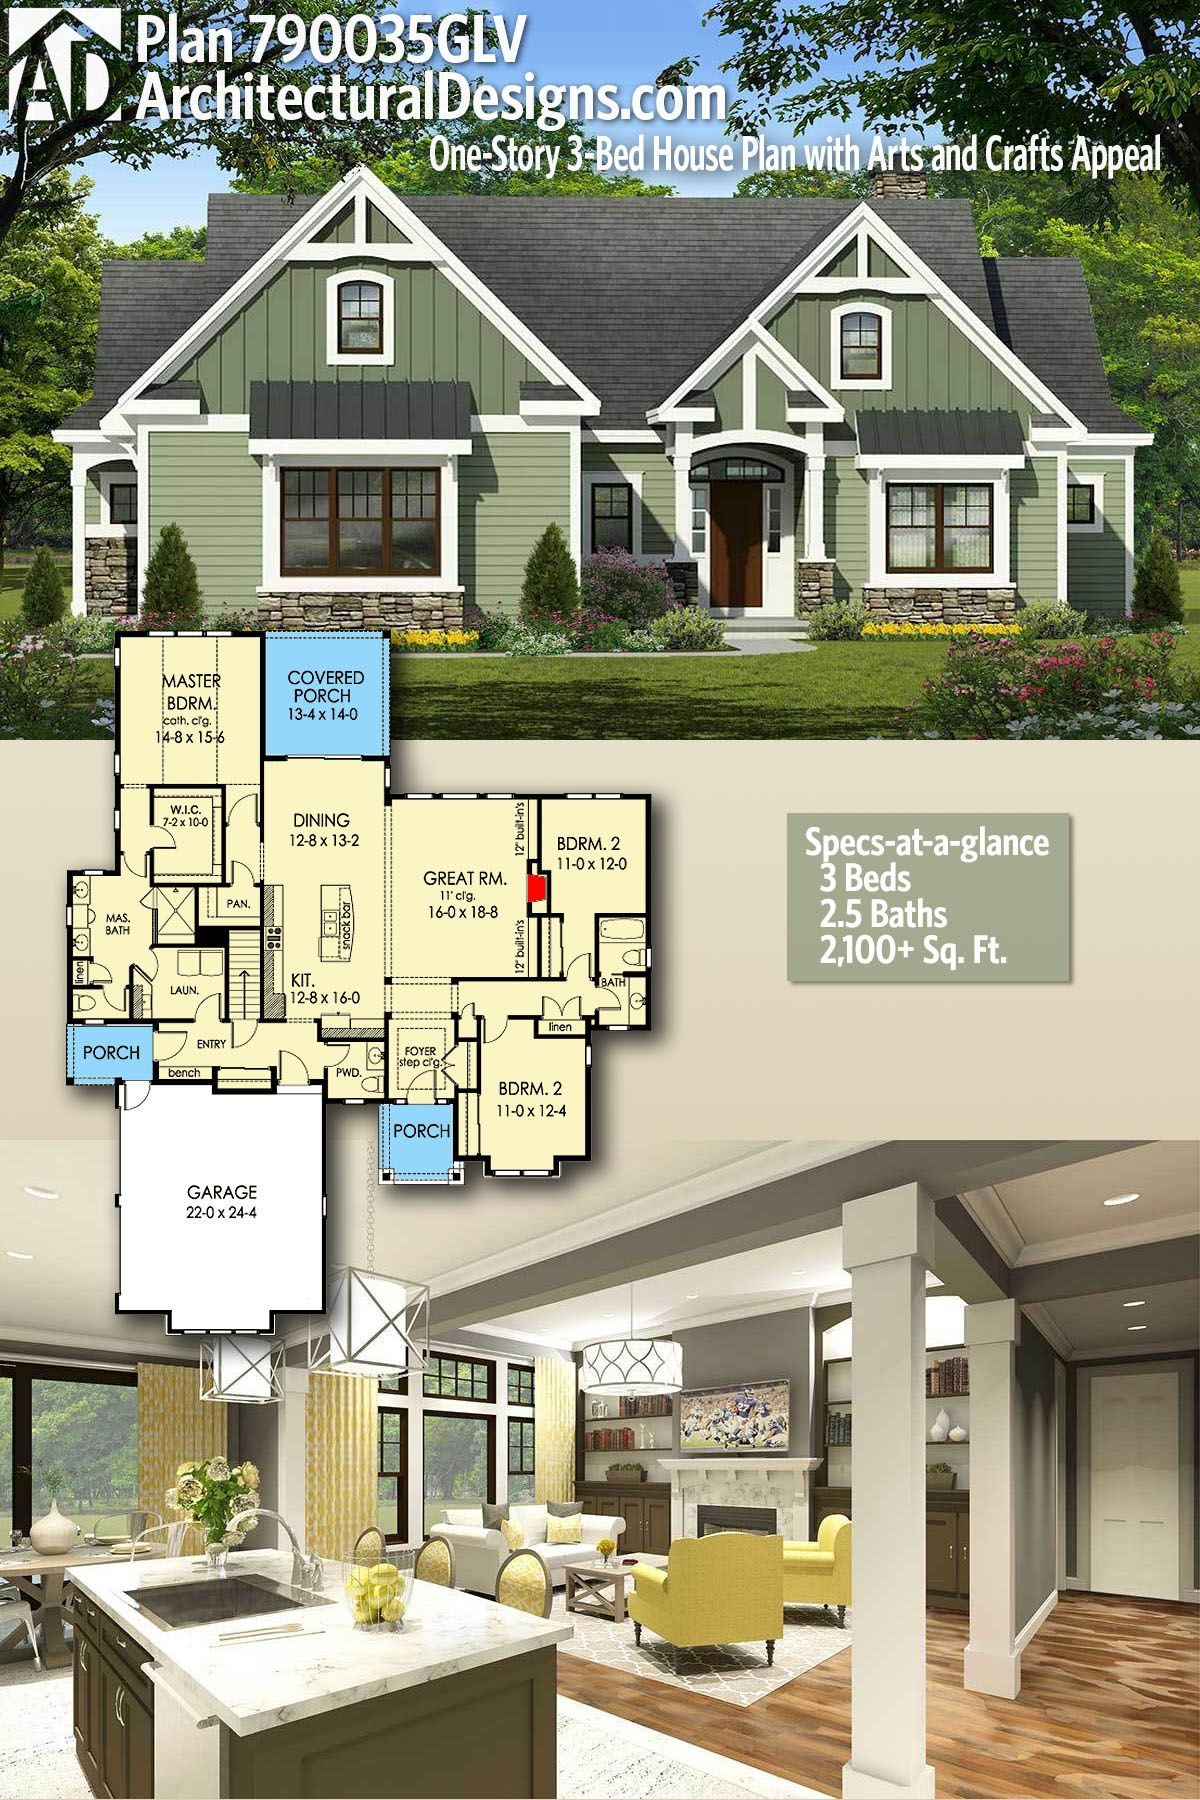 Exterior home design one story  Plan GLV OneStory Bed House Plan with Arts and Crafts Feel